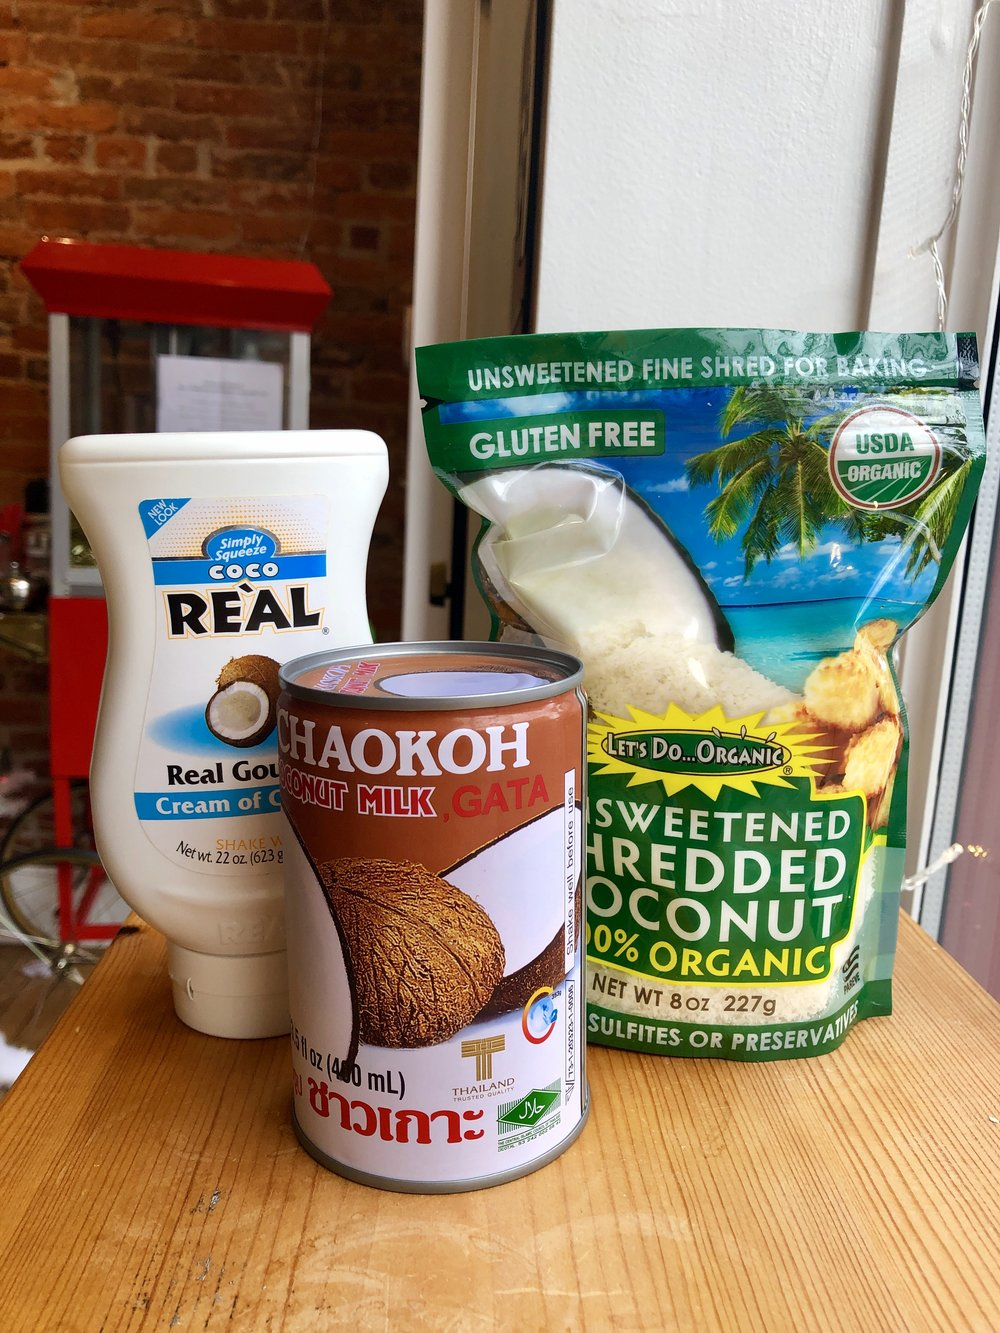 Limber de Coco Ingredients